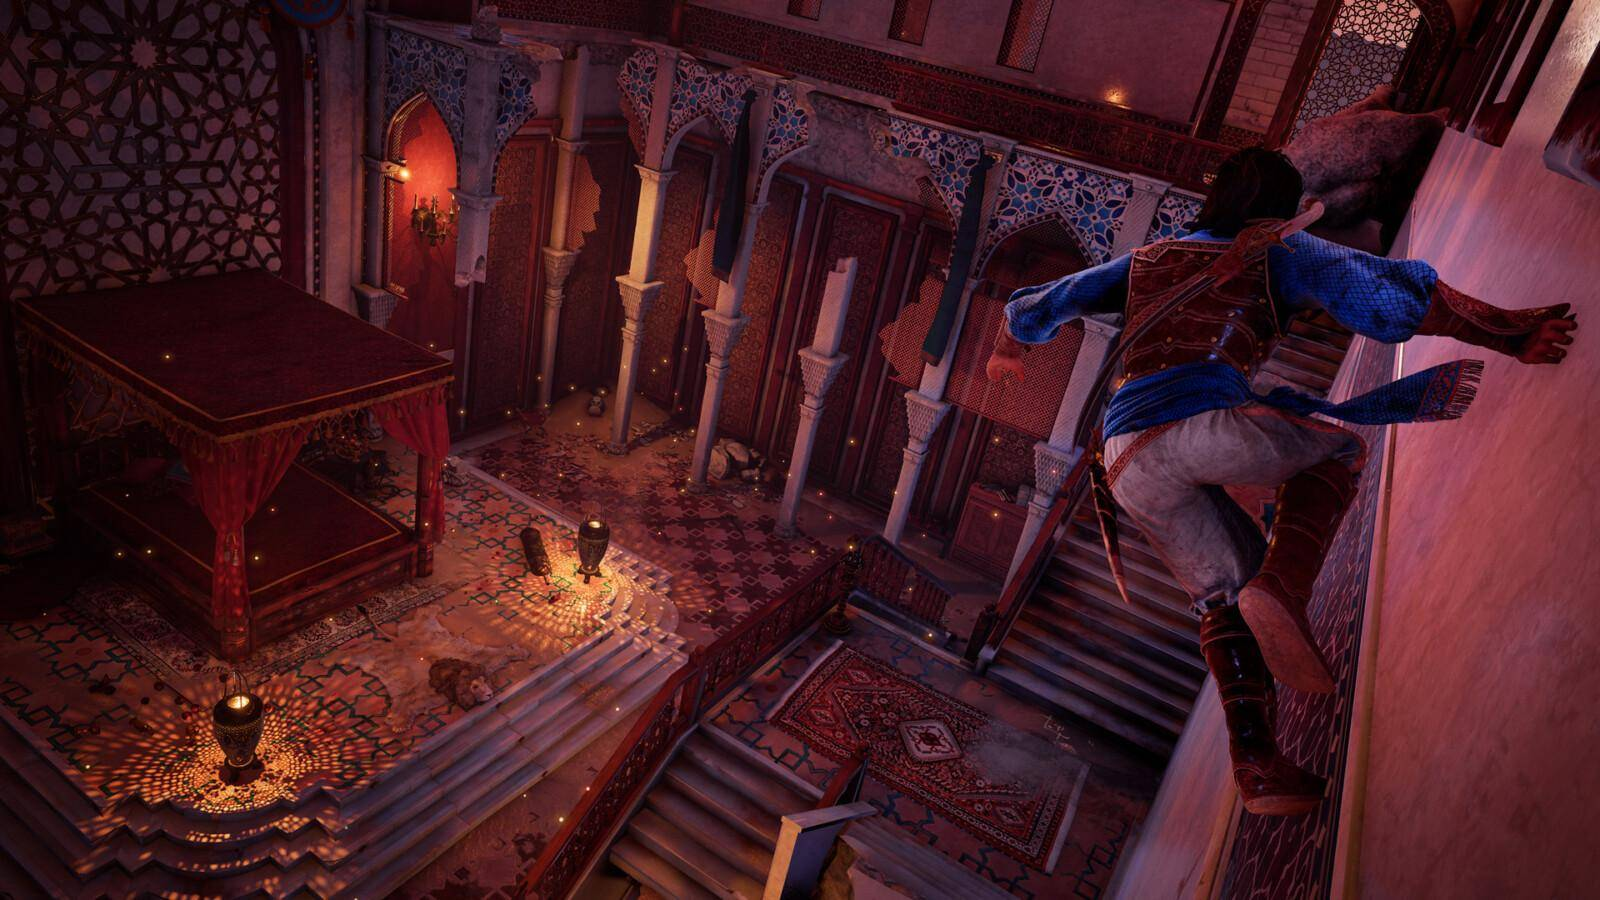 Prince of Persia The Sands of Time remake